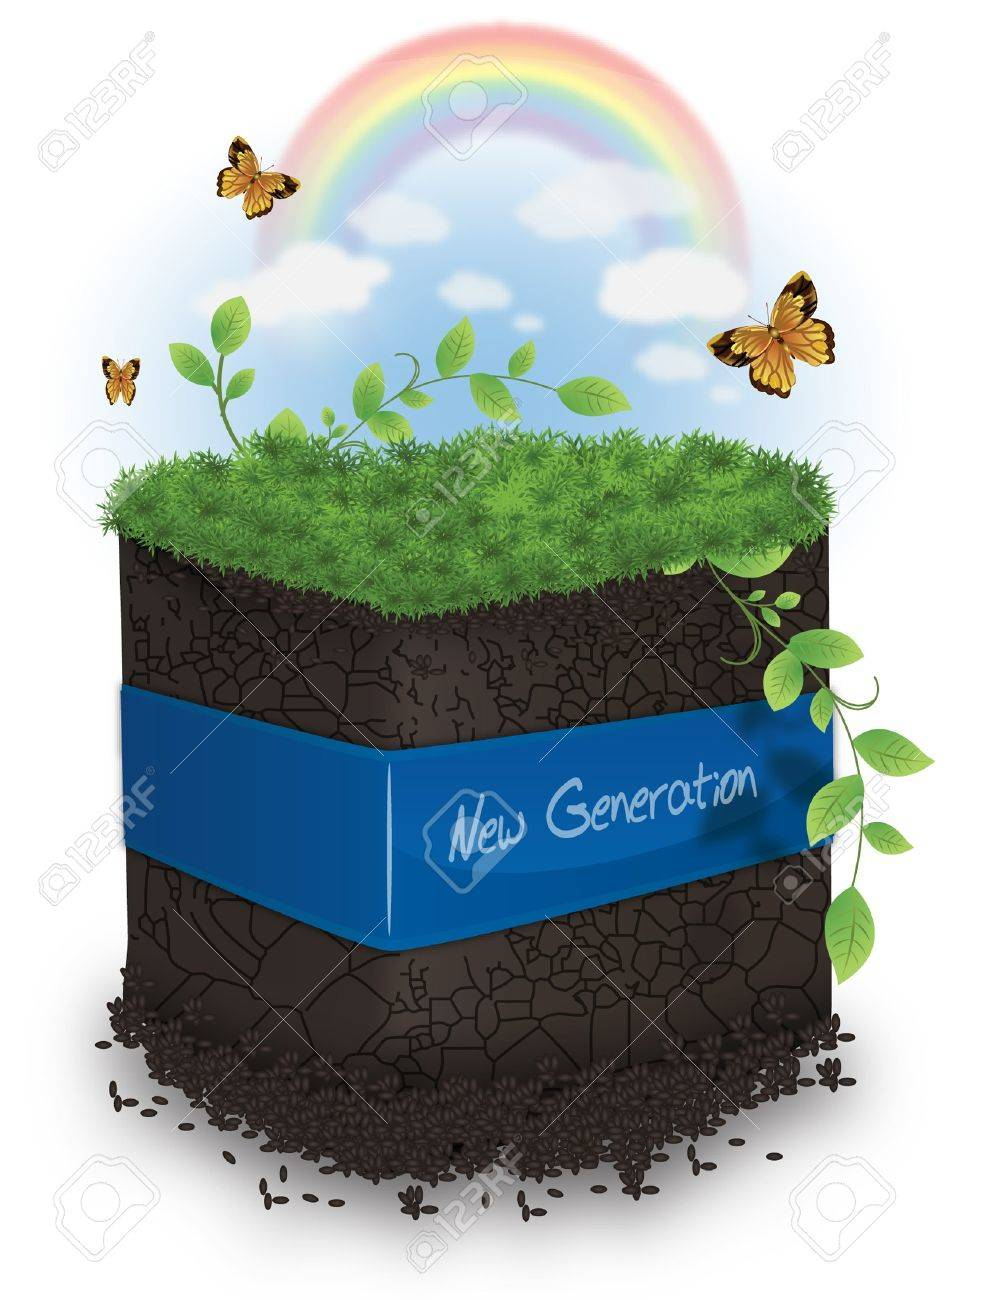 Green Eart Concept with Butterfly, Grass and Leafs Stock Vector - 11264175